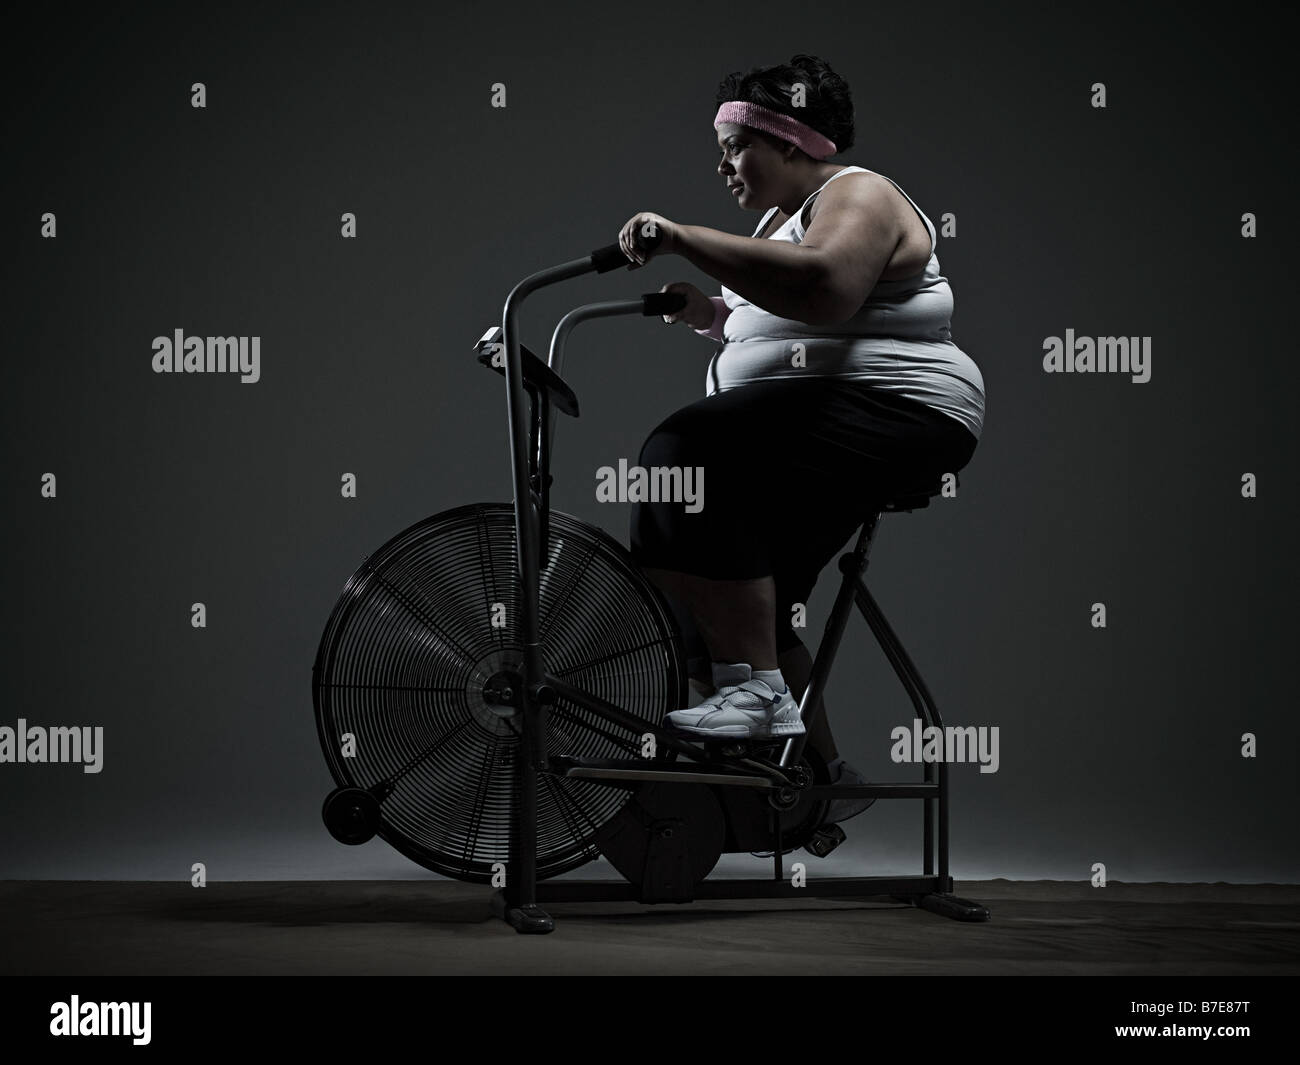 Overweight woman on exercise bike - Stock Image